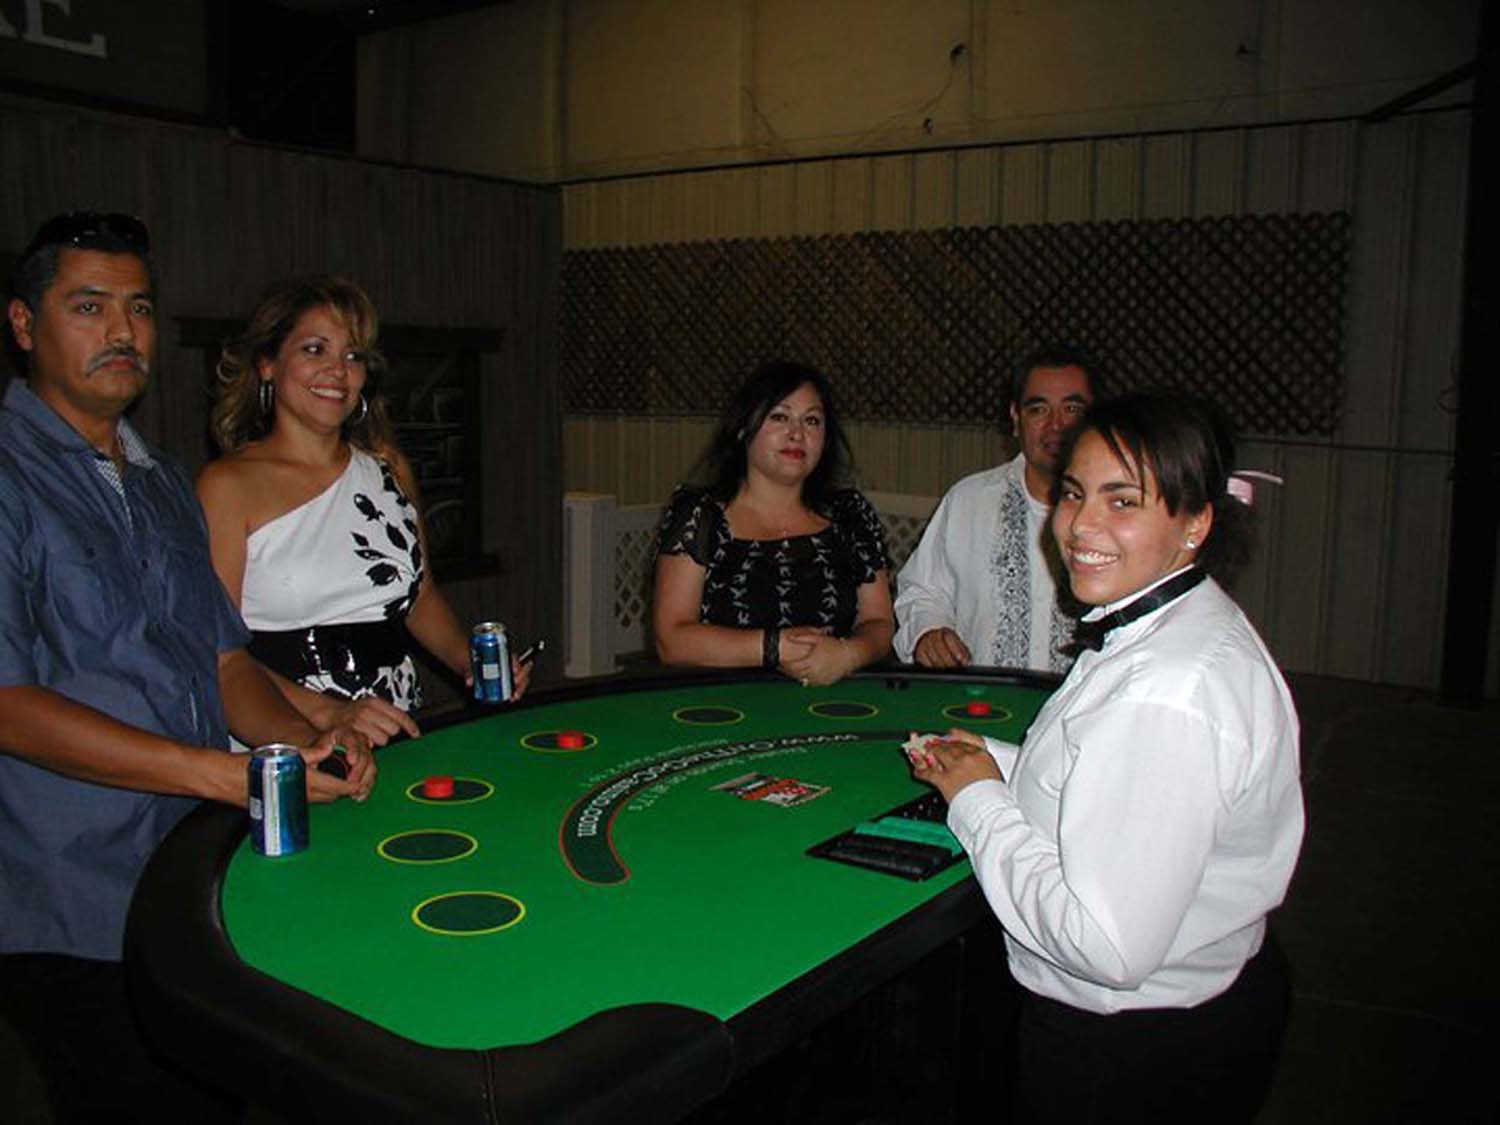 Blackjack Mesa Casino Party Photos Casino Party Pictures Casino Party Images